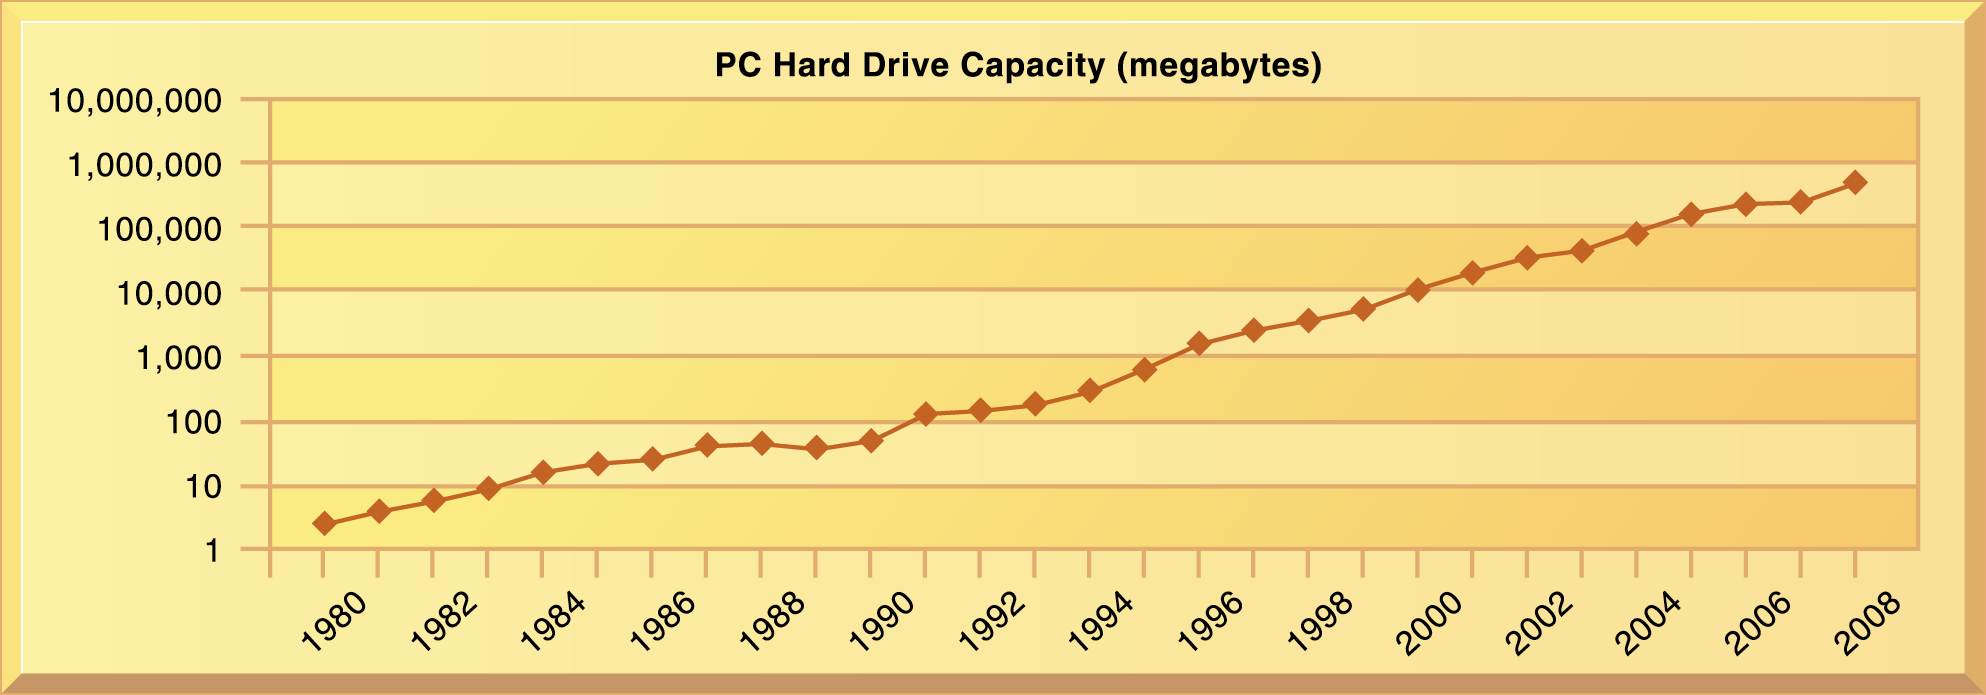 IT Infrastructure The Capacity of Hard Drives Grows Exponentially 1980-2007 From 1980 to 1990, hard disk drive capacities for PCs grew at the